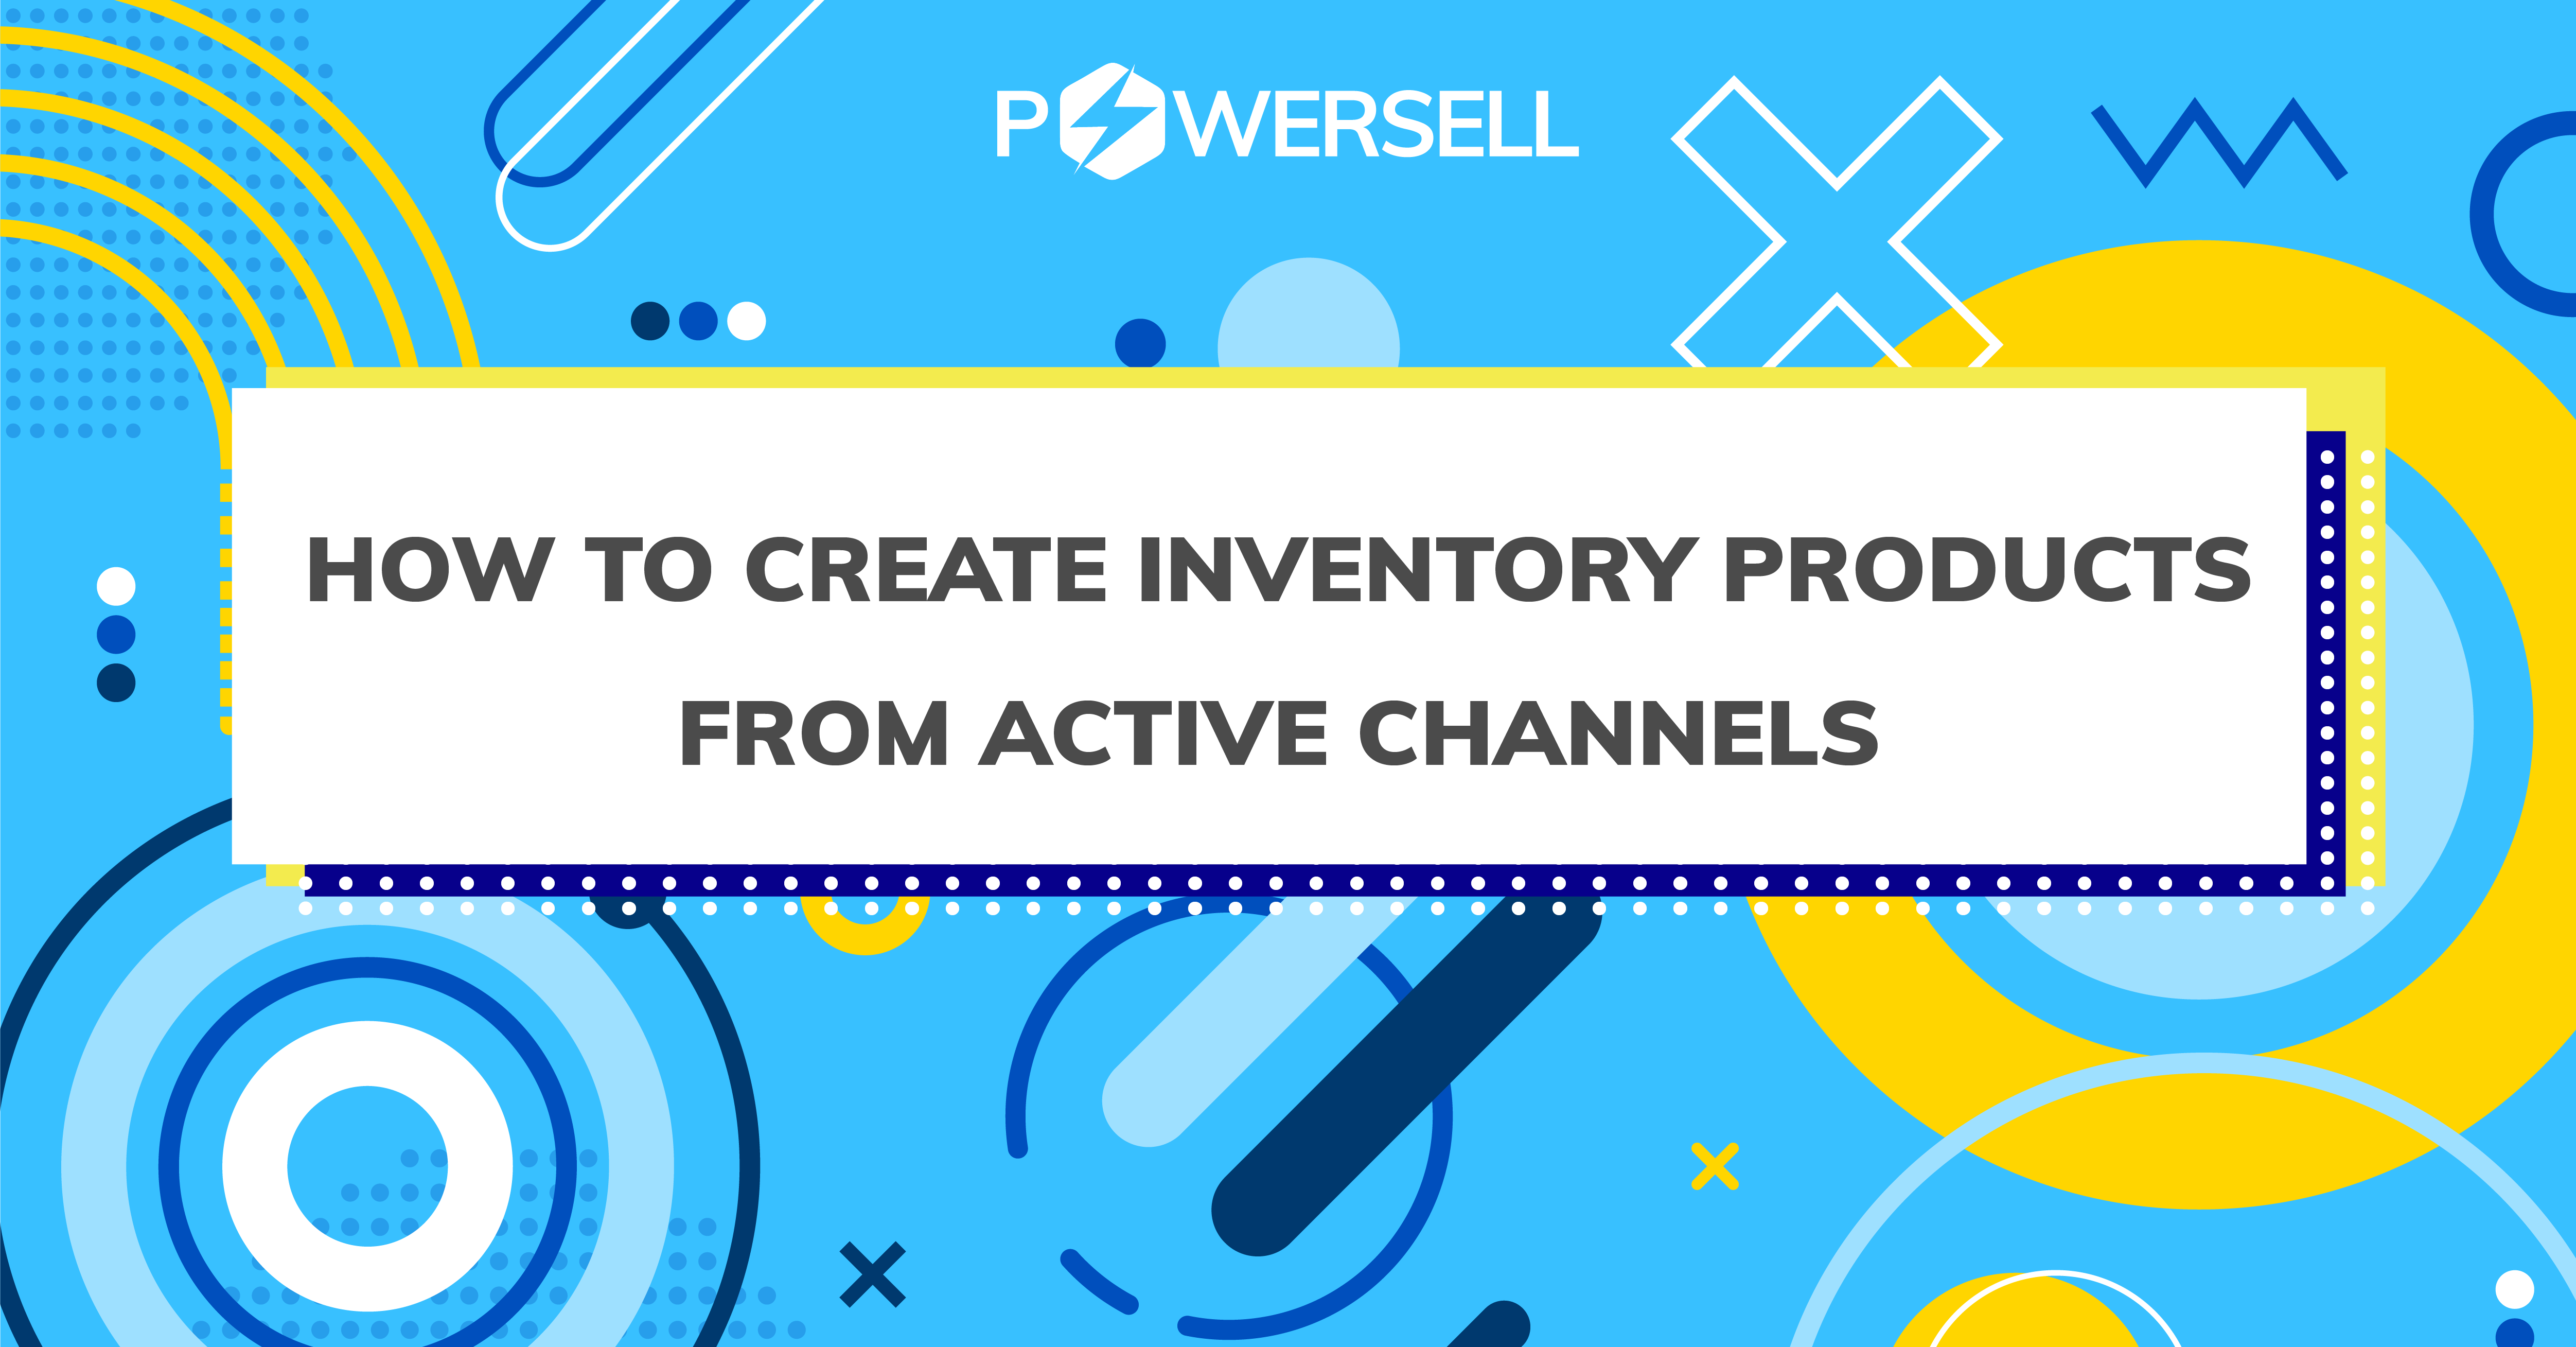 HOW TO CREATE INVENTORY PRODUCTS FROM ACTIVE CHANNELS